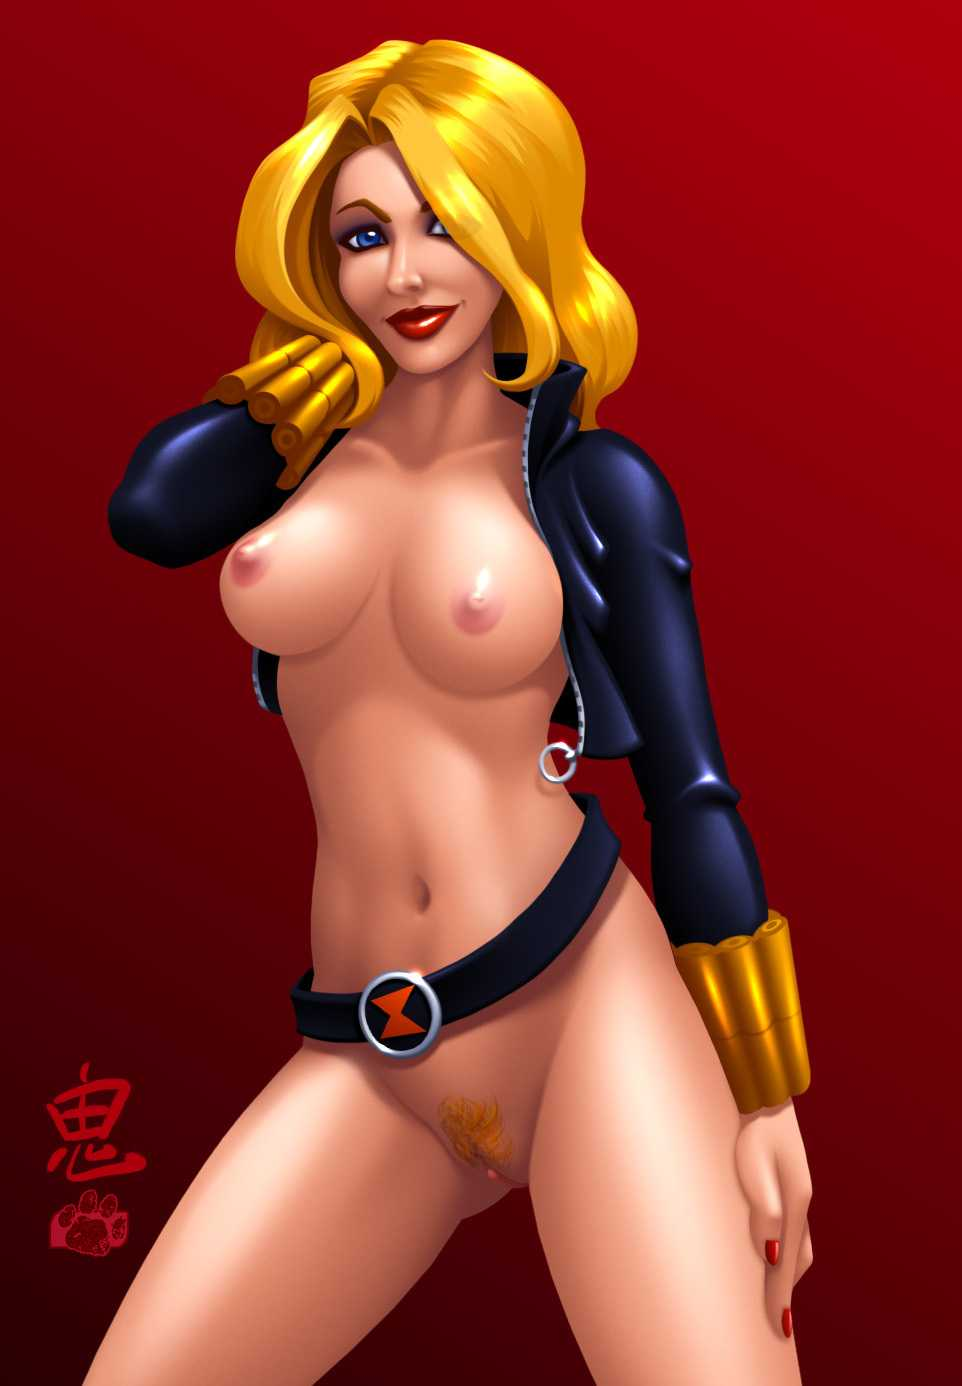 Black Widow (Yelena Belova) nude